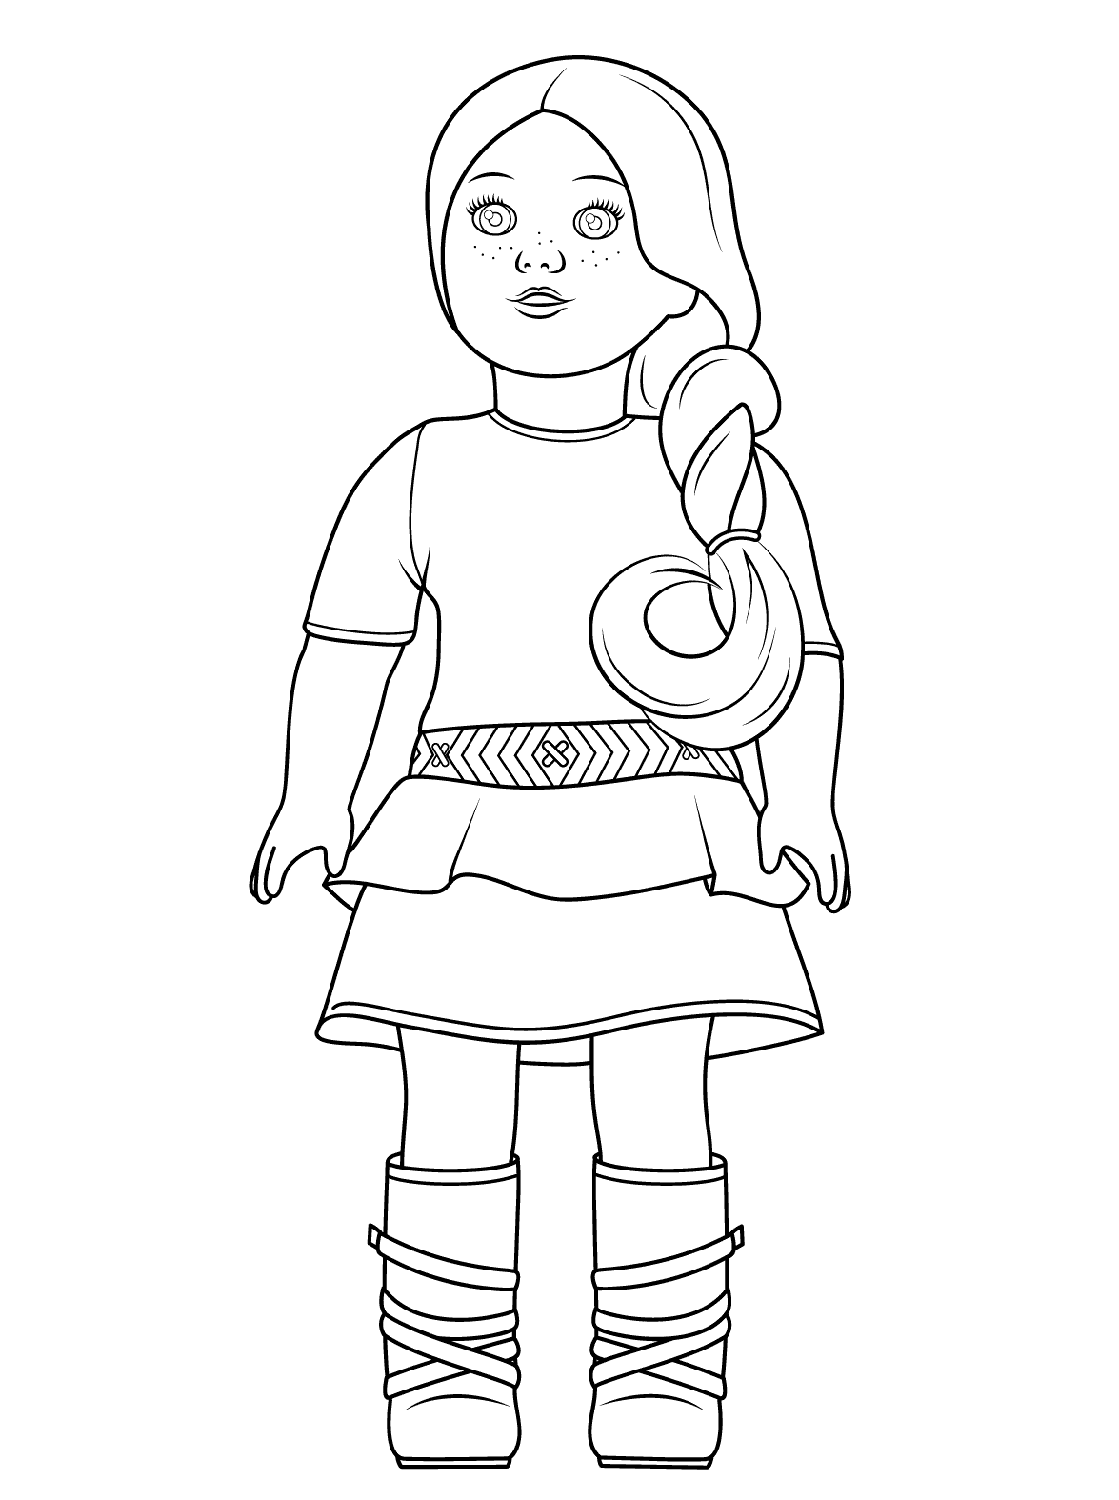 american girl coloring page american girl doll coloring pages coloringrocks girl american page coloring